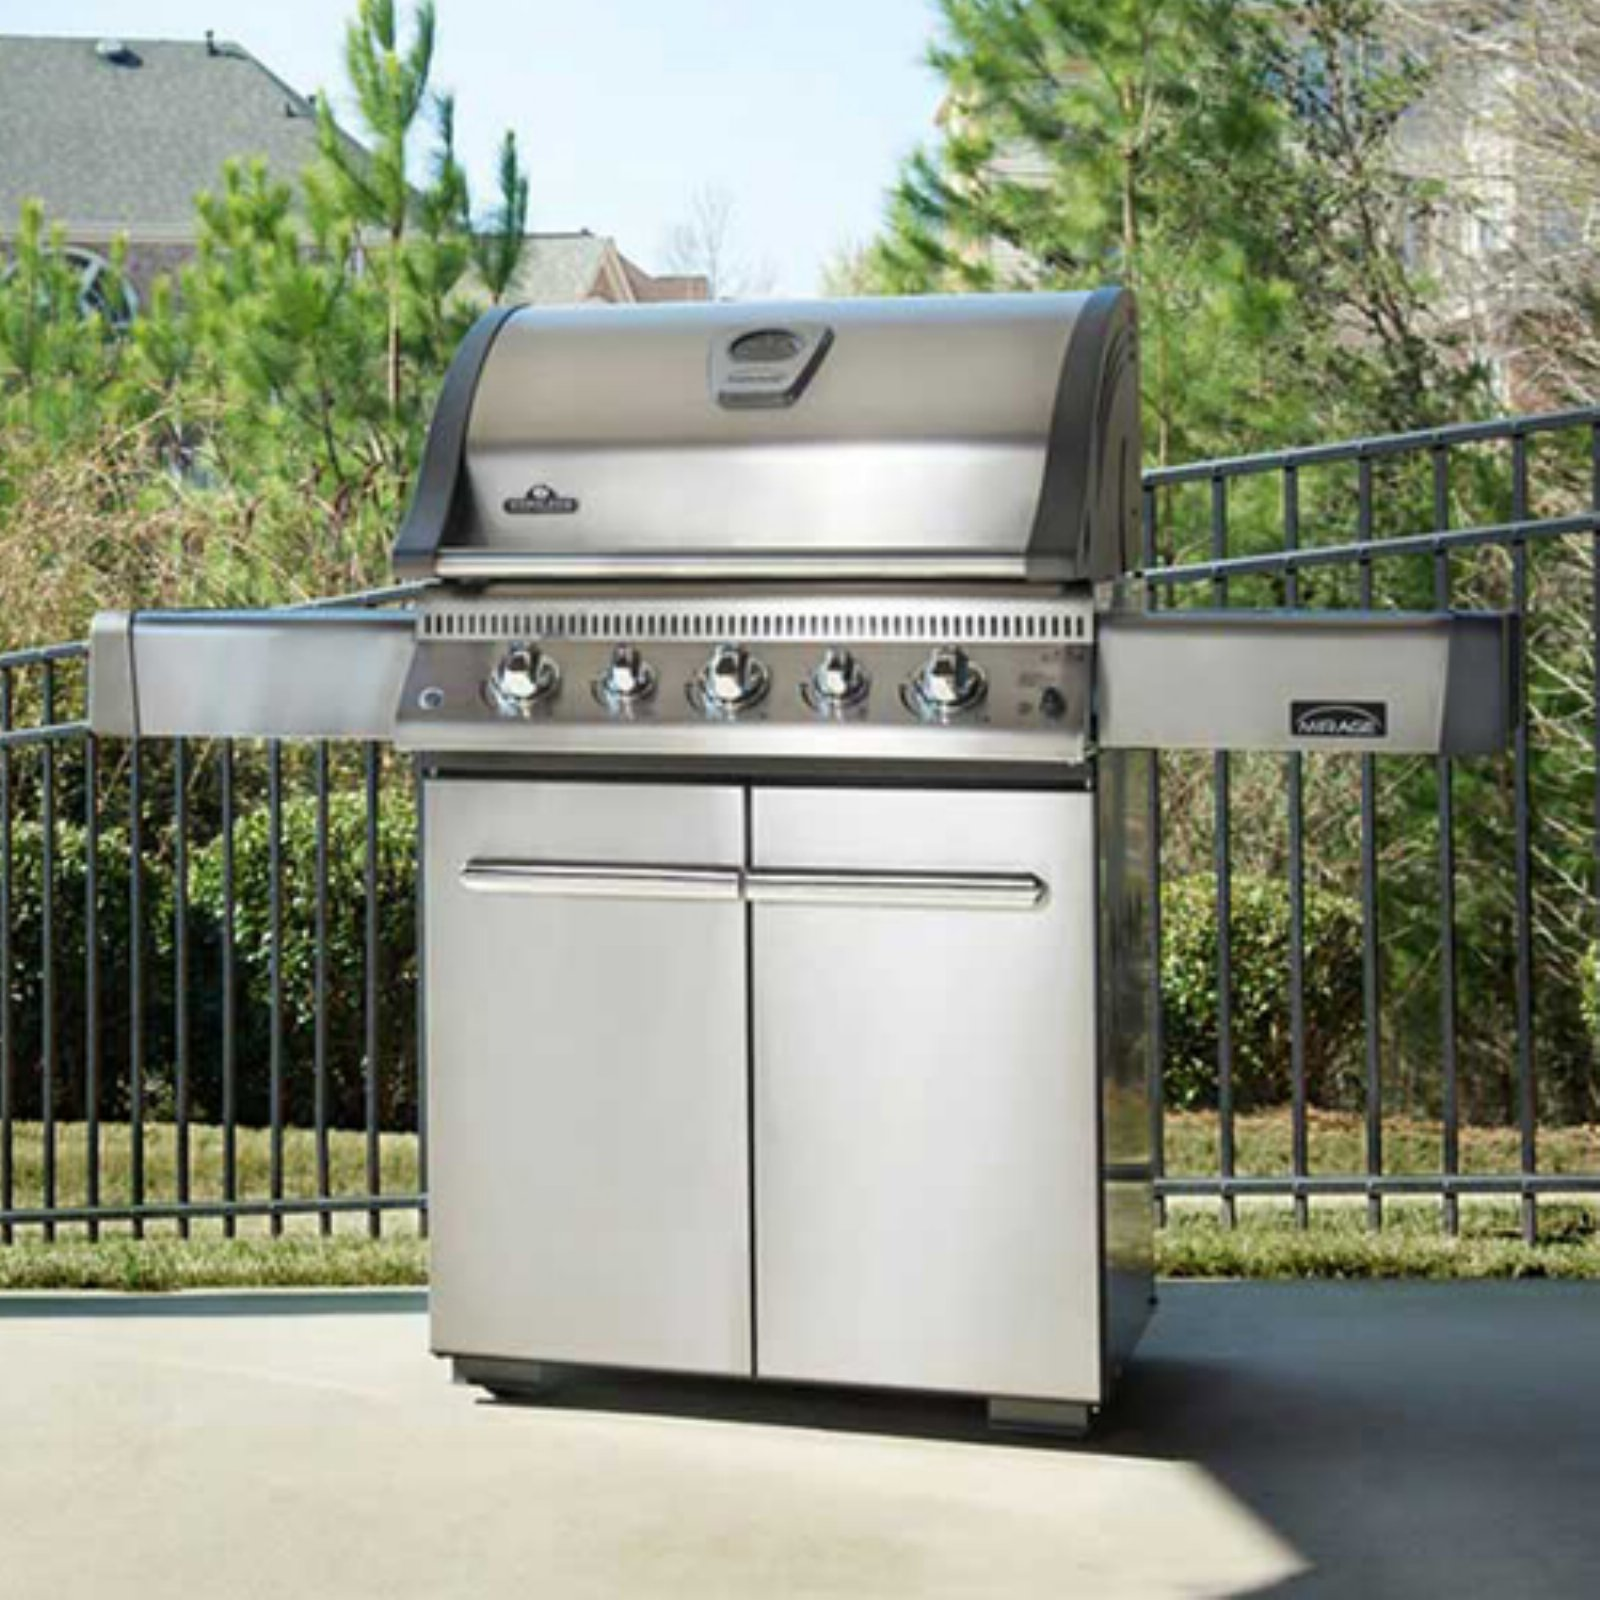 Napoleon Lex485rsib Propane Bbq Napoleon Lex485rsib Grill With Rear Infrared Burner And Infrared